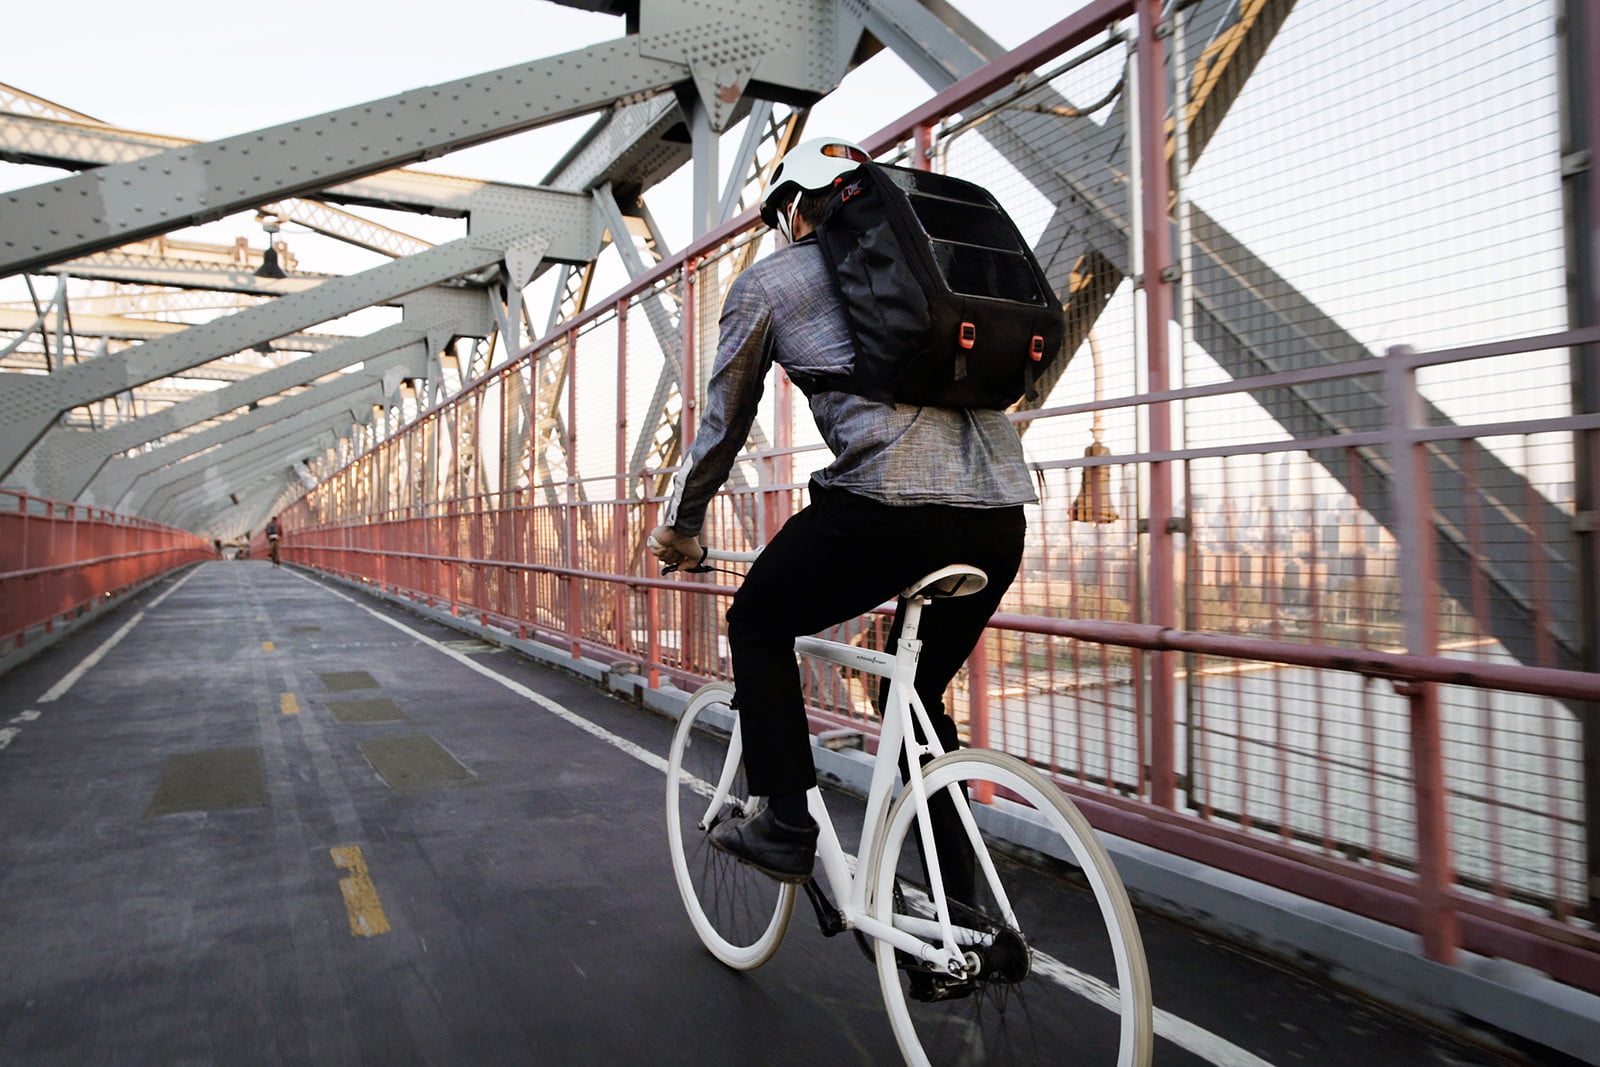 volatic array offgrid solar backpack commuting